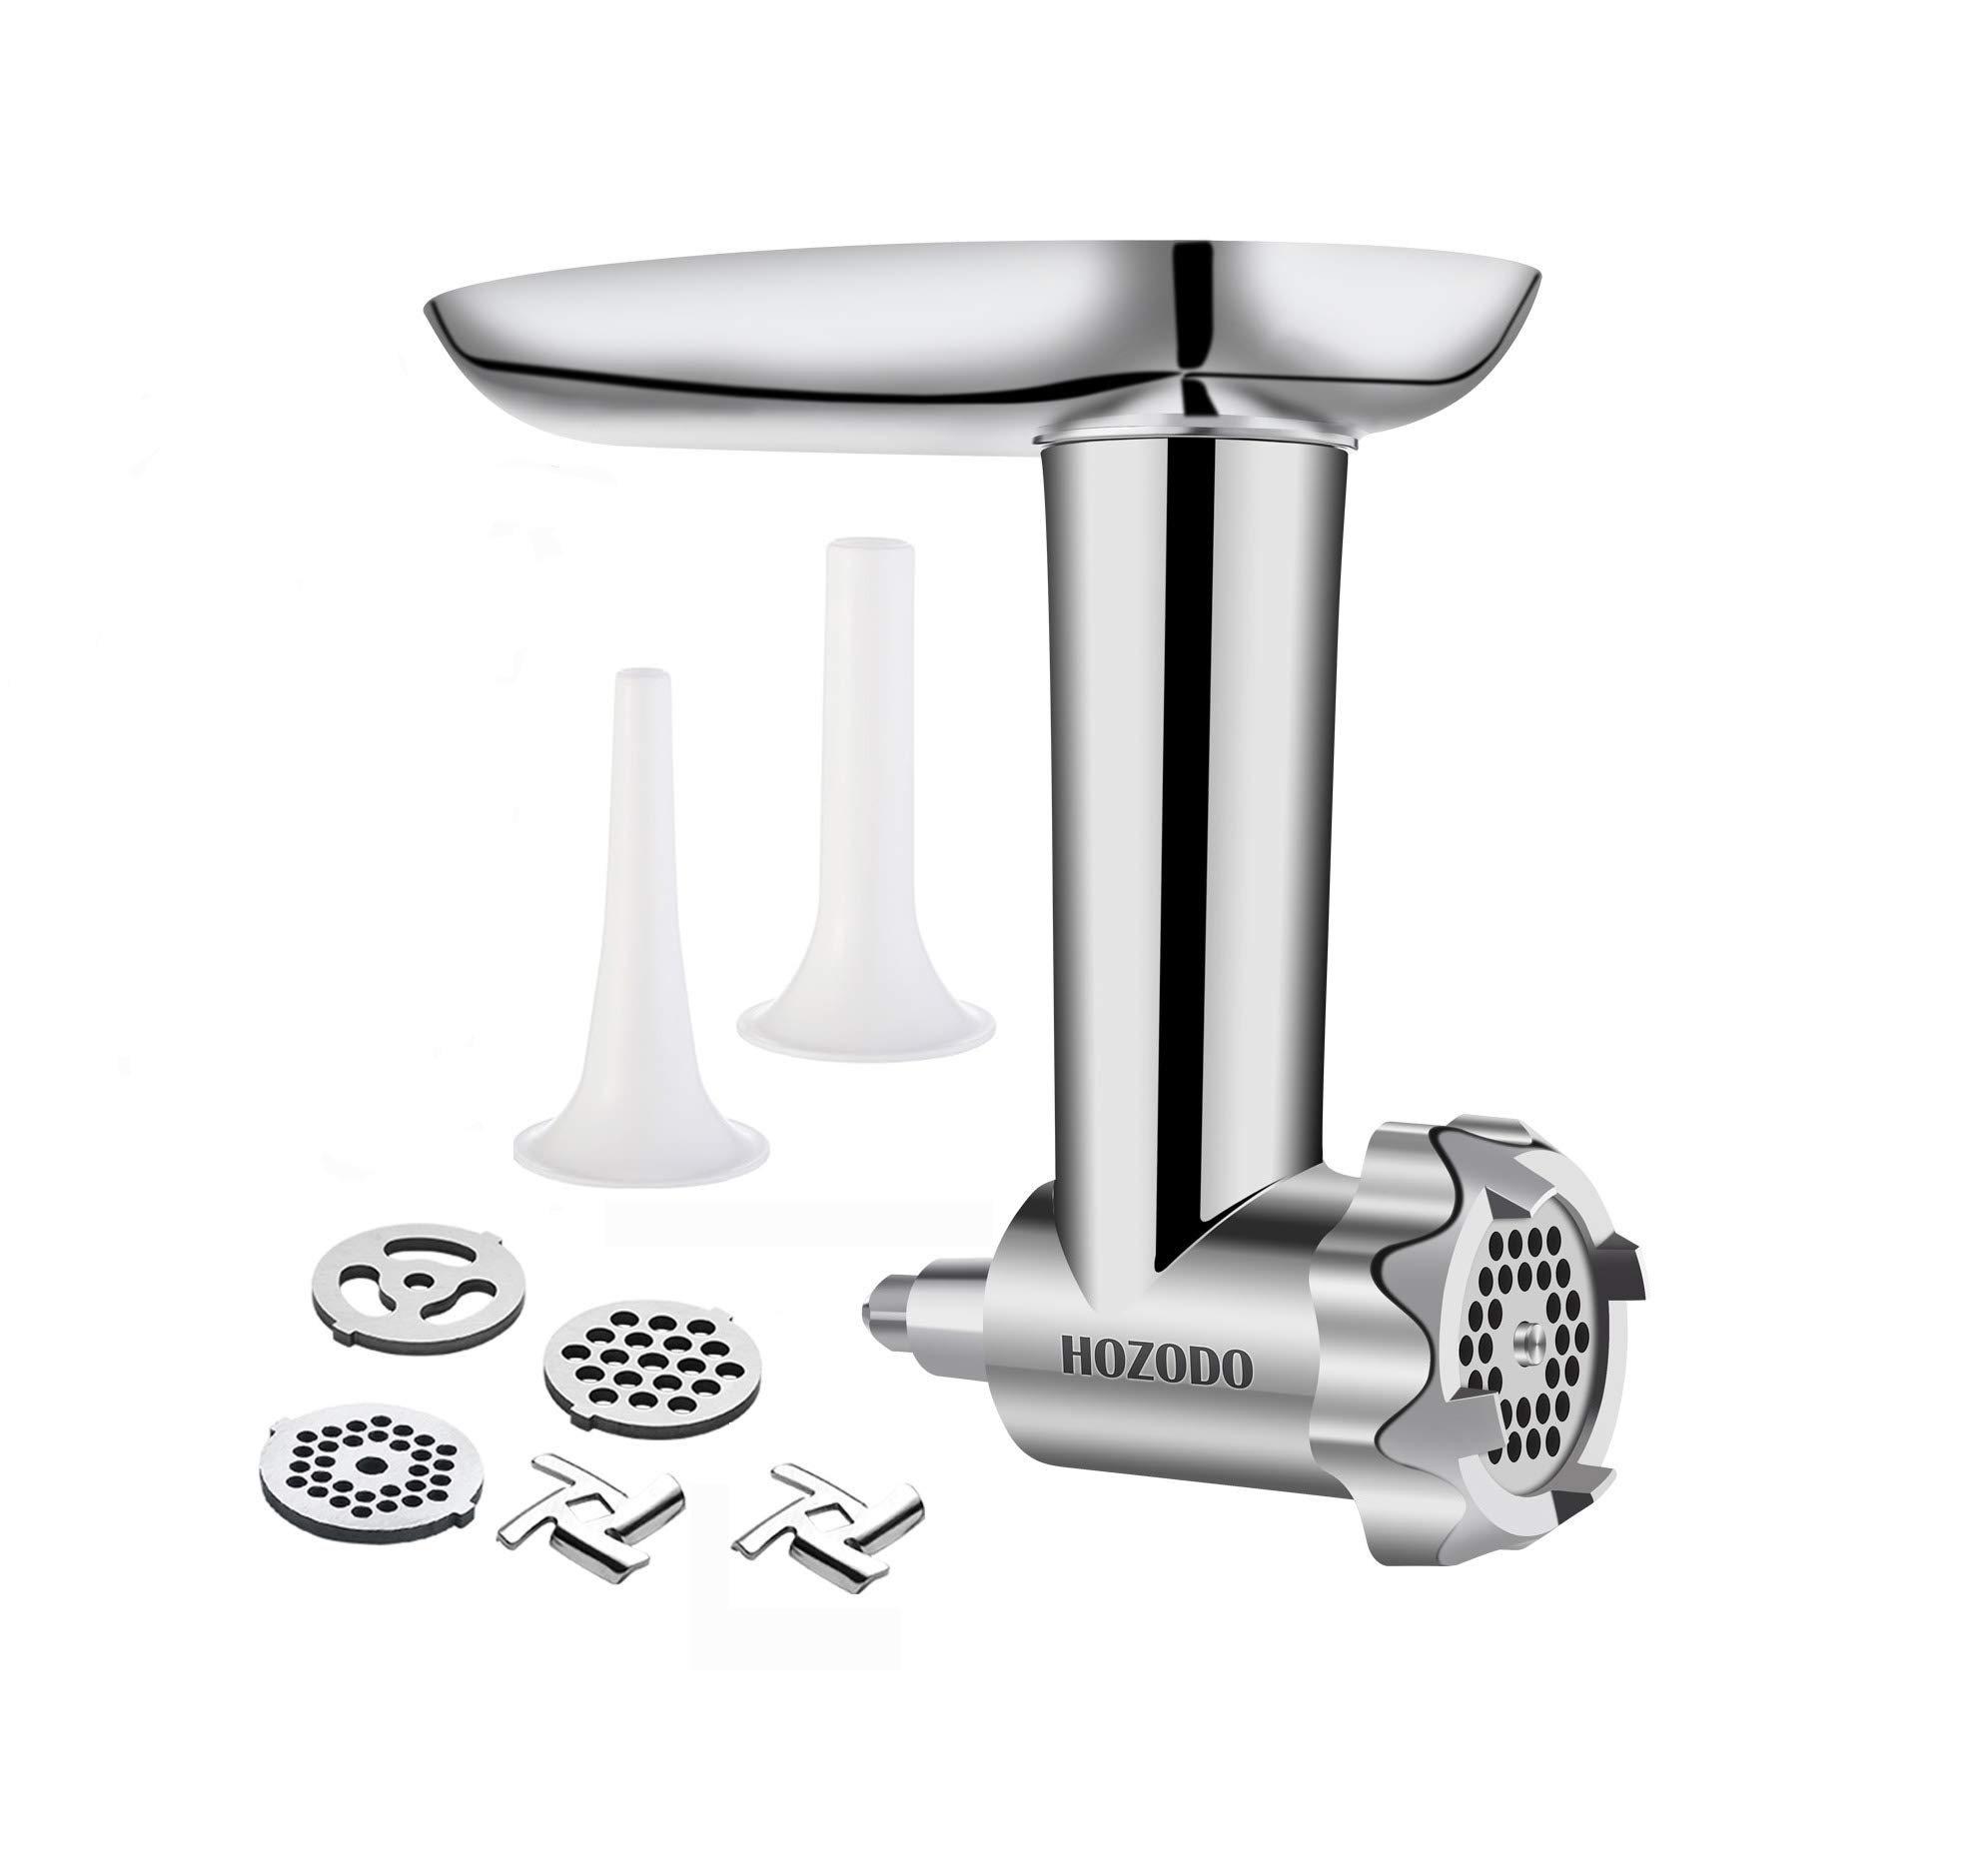 Metal Food Meat Grinder Attachment for KitchenAid Stand Mixers - Including Sausage Stuffer Accessory by HOZODO